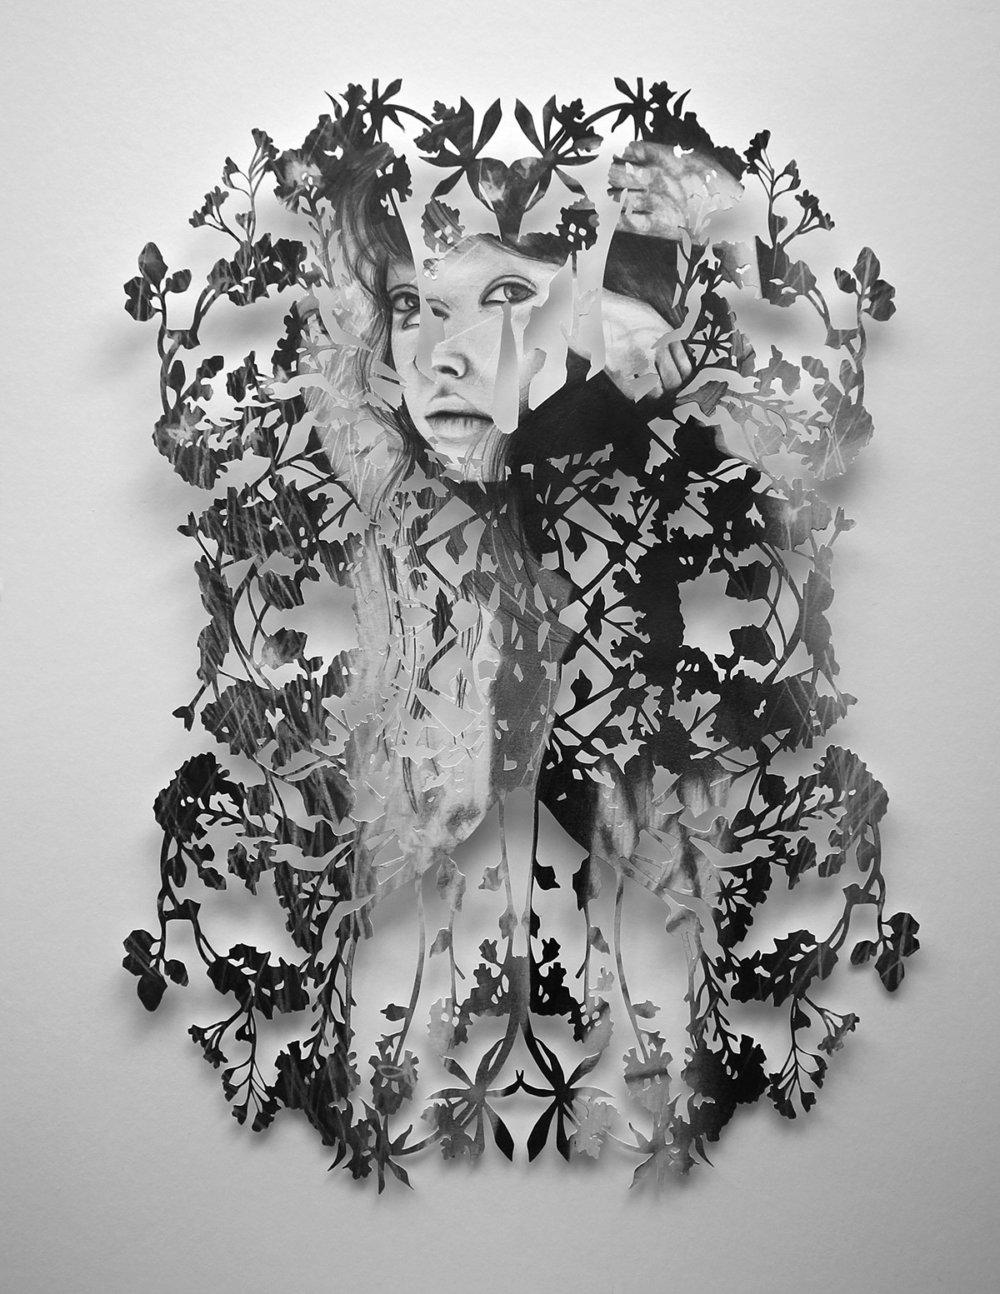 Fragmented Feelings Illustrated Papercut Works By Christine Kim 8